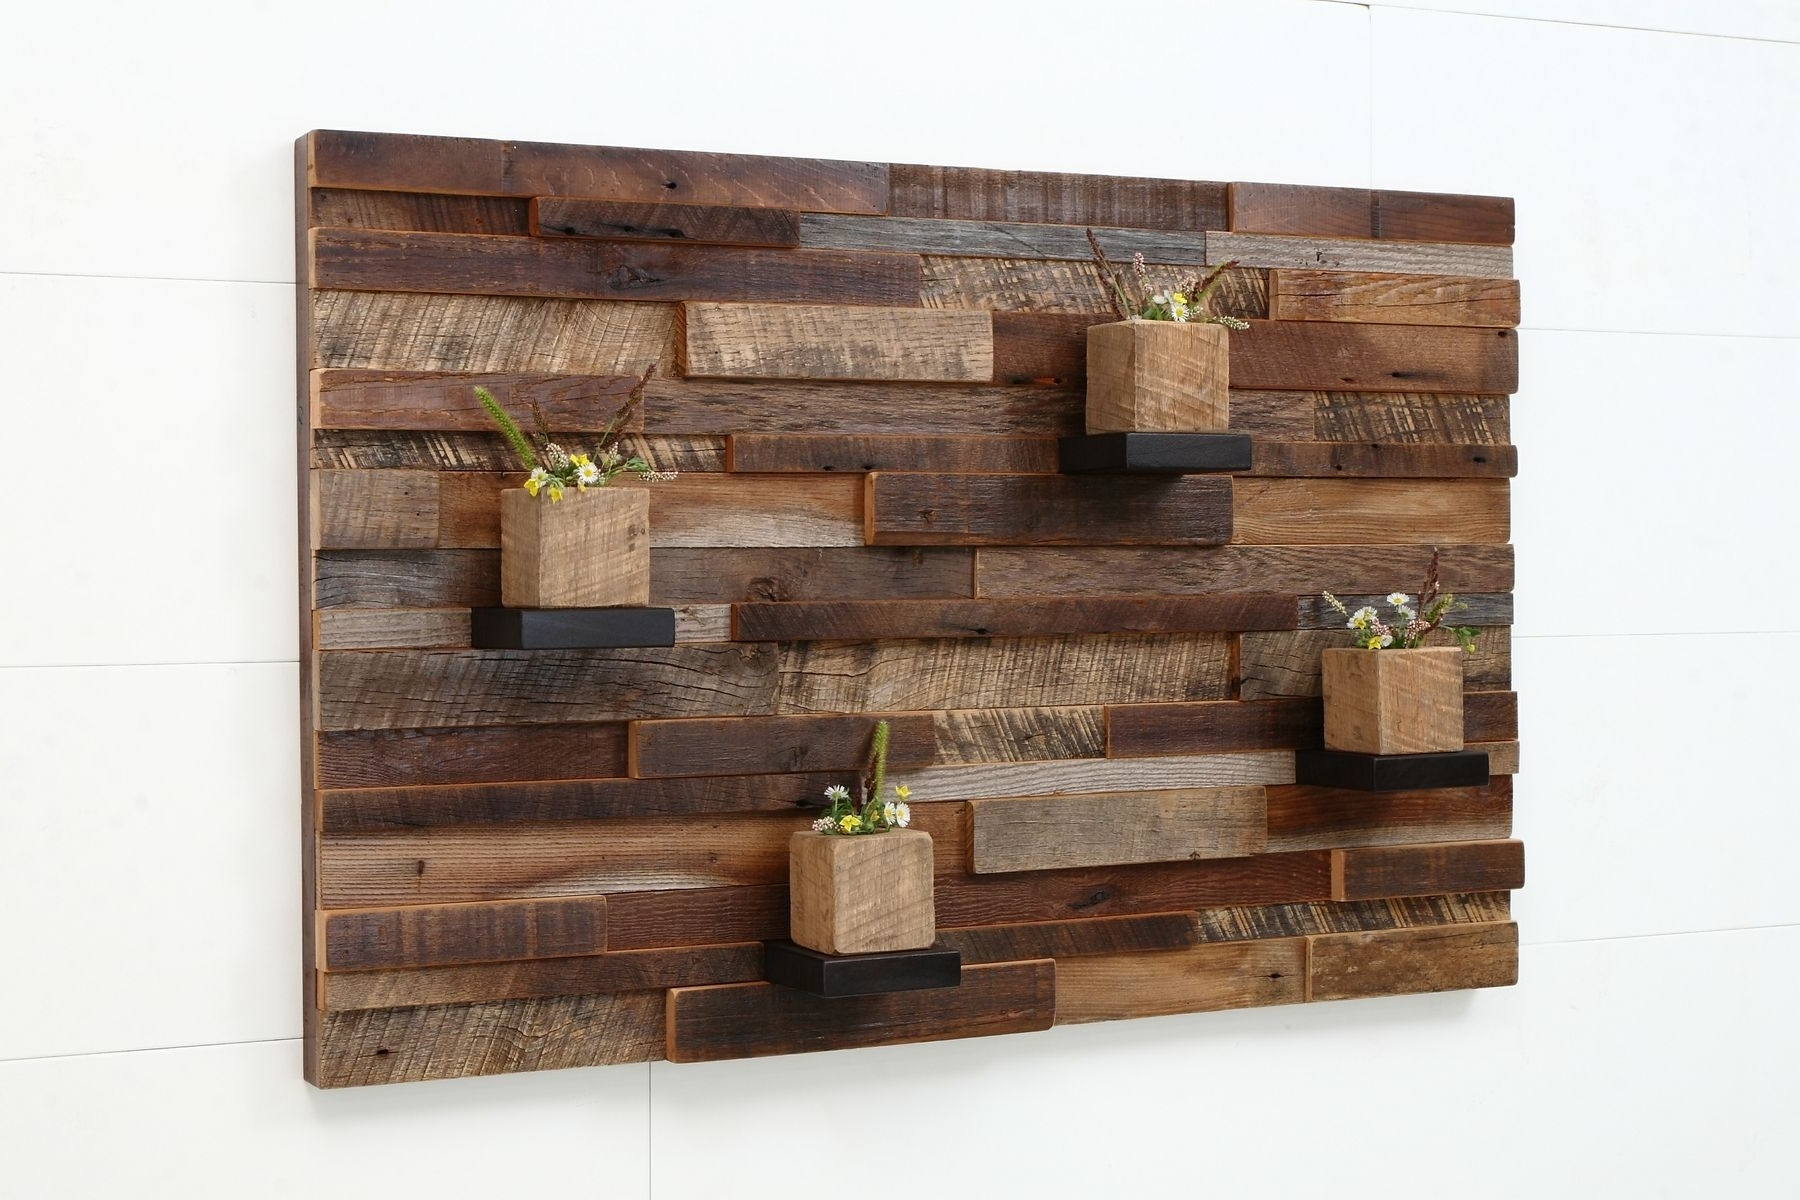 Wooden Wall Art Regarding Most Up To Date Hand Crafted Reclaimed Wood Wall Art Made Of Old Barnwood (View 15 of 15)